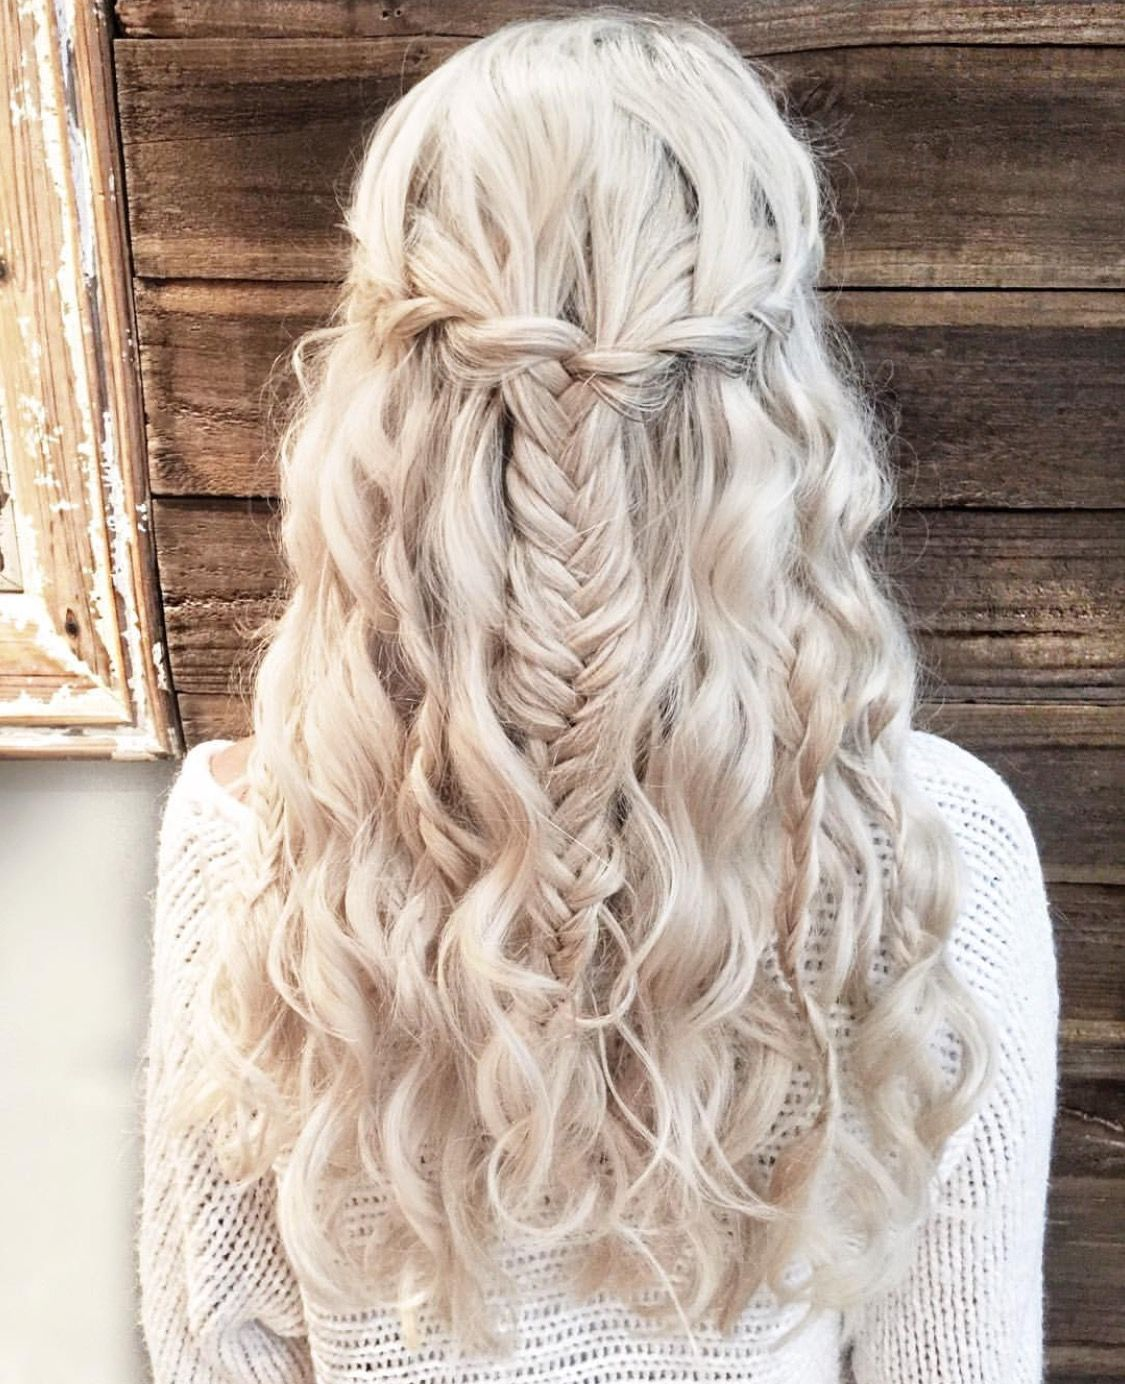 Pin by catcows on hair pinterest hair style hair make up and